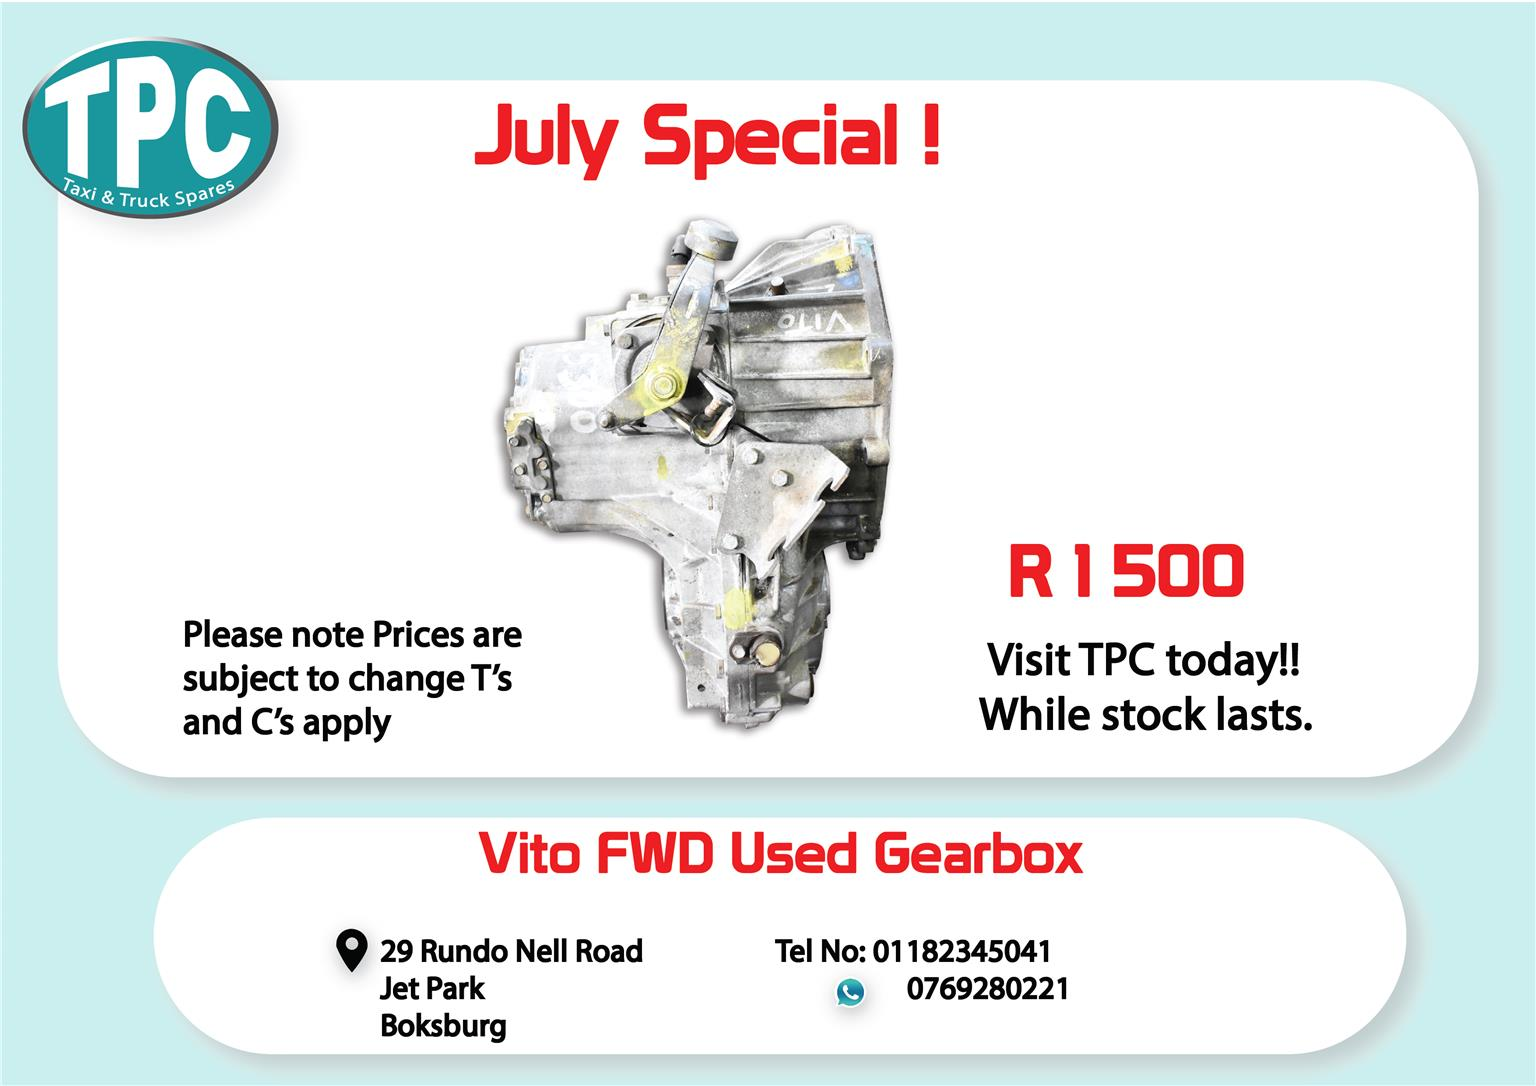 Mercedes Benz Vito FWD Used Gearbox for Sale at TPC